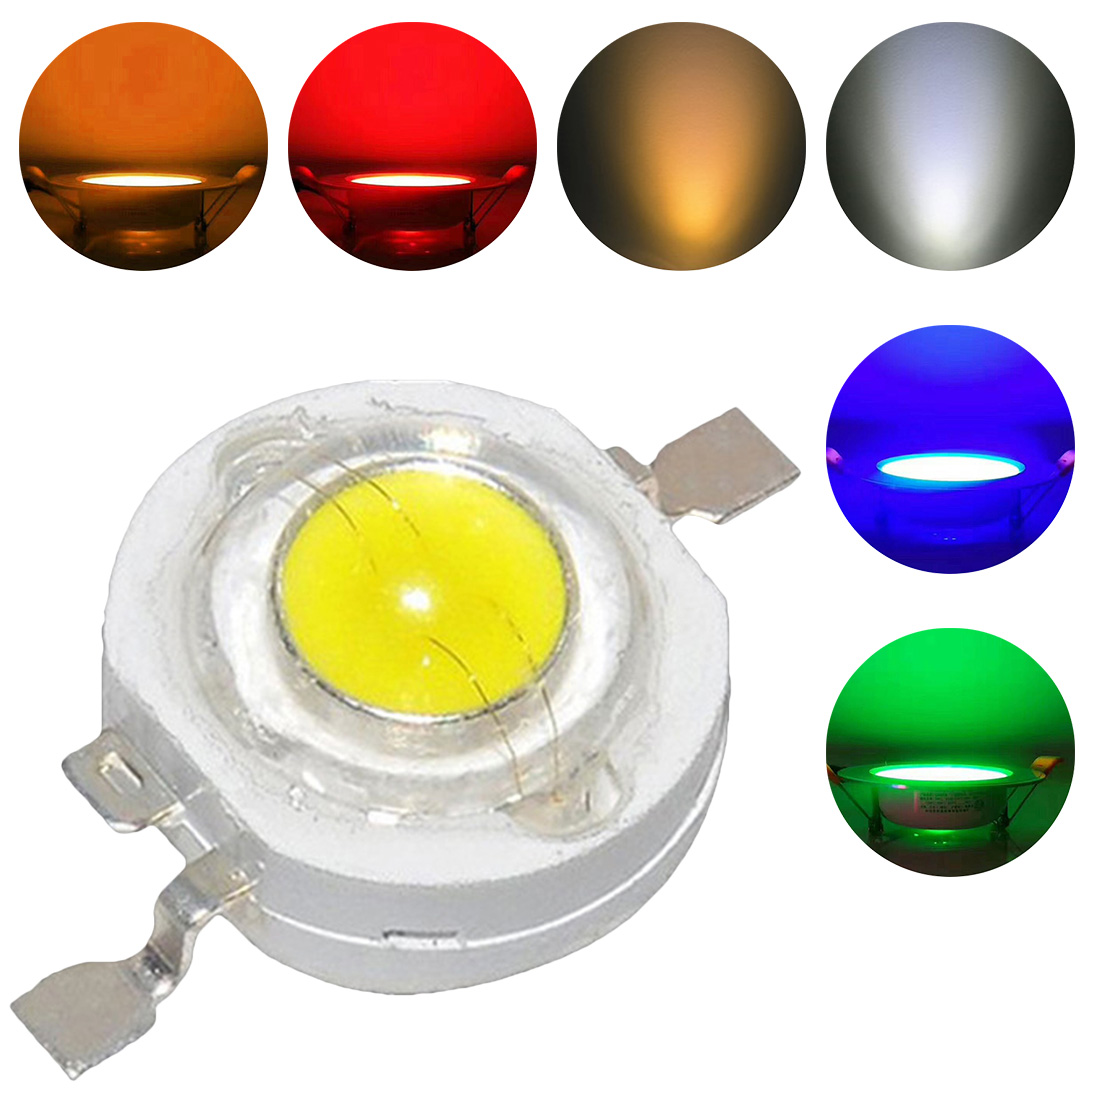 1pc 1W/<font><b>3W</b></font> High Power <font><b>LED</b></font> Light-Emitting Diode <font><b>LEDs</b></font> Chip <font><b>SMD</b></font> Warm White Red Green Blue Yellow For SpotLight Downlight Lamp Bulb image